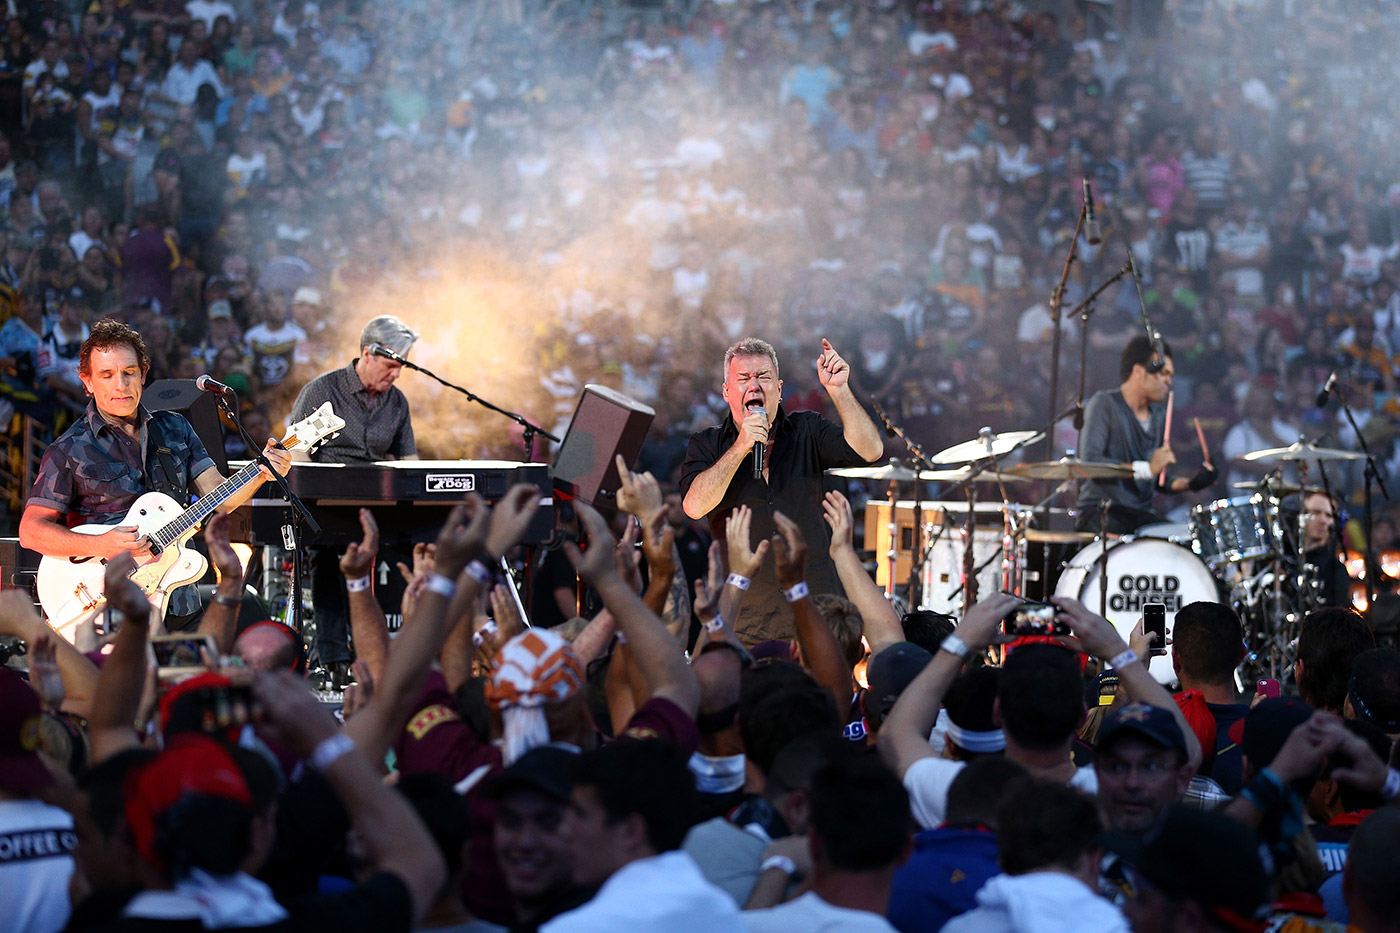 If you're Aussie and you know it, shout: Jimmy Barnes and Cold Chisel at a concert ahead of the NRL Grand Final in 2015